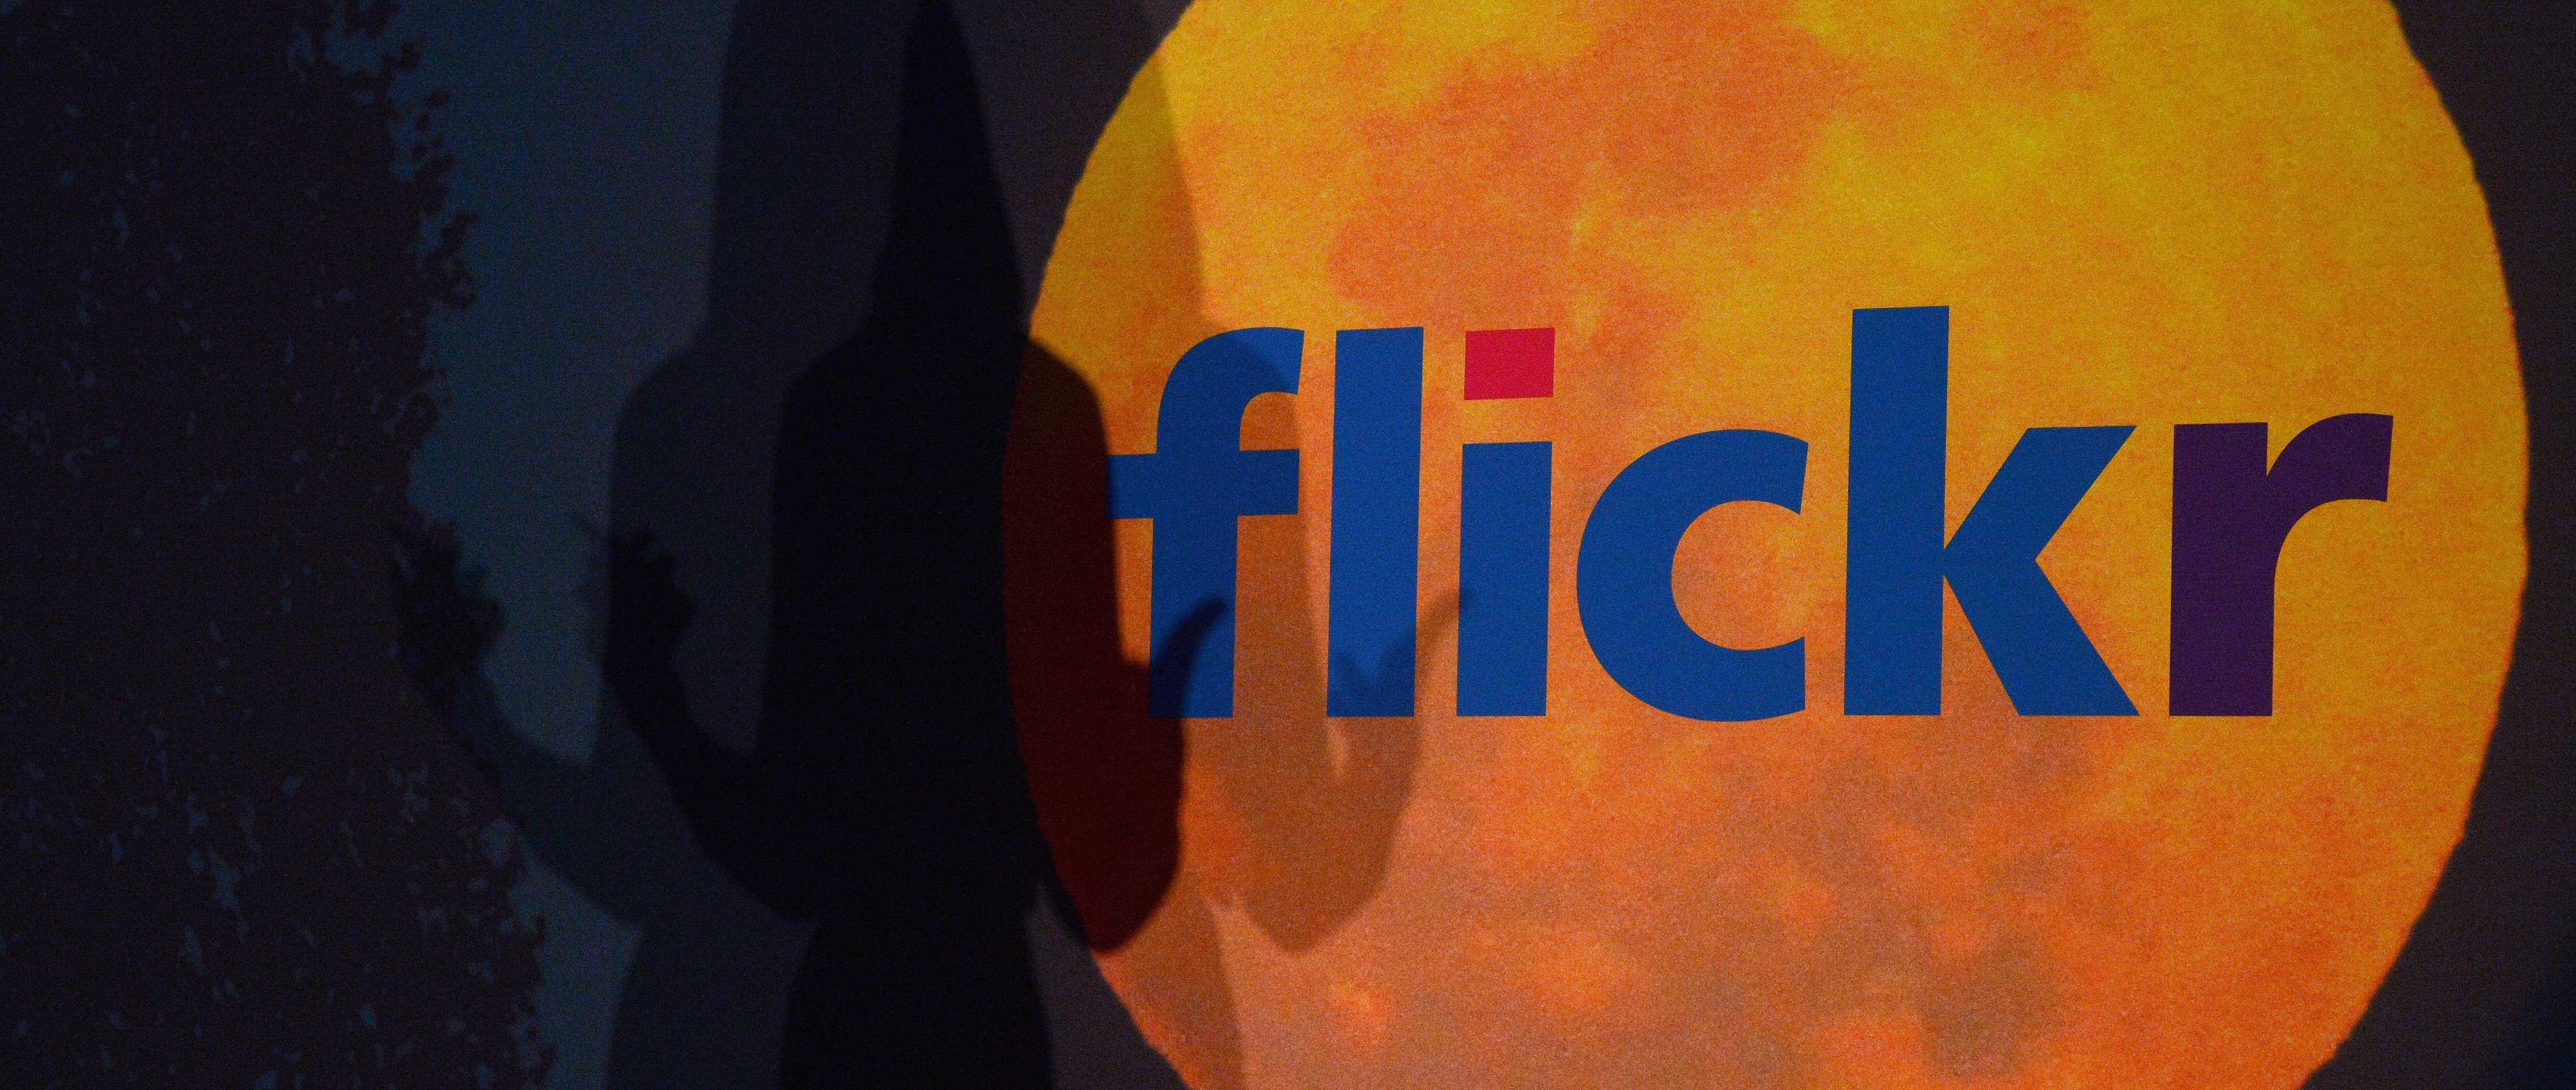 Flickr Shows it Could Still Be the Best Photo-Sharing Platform